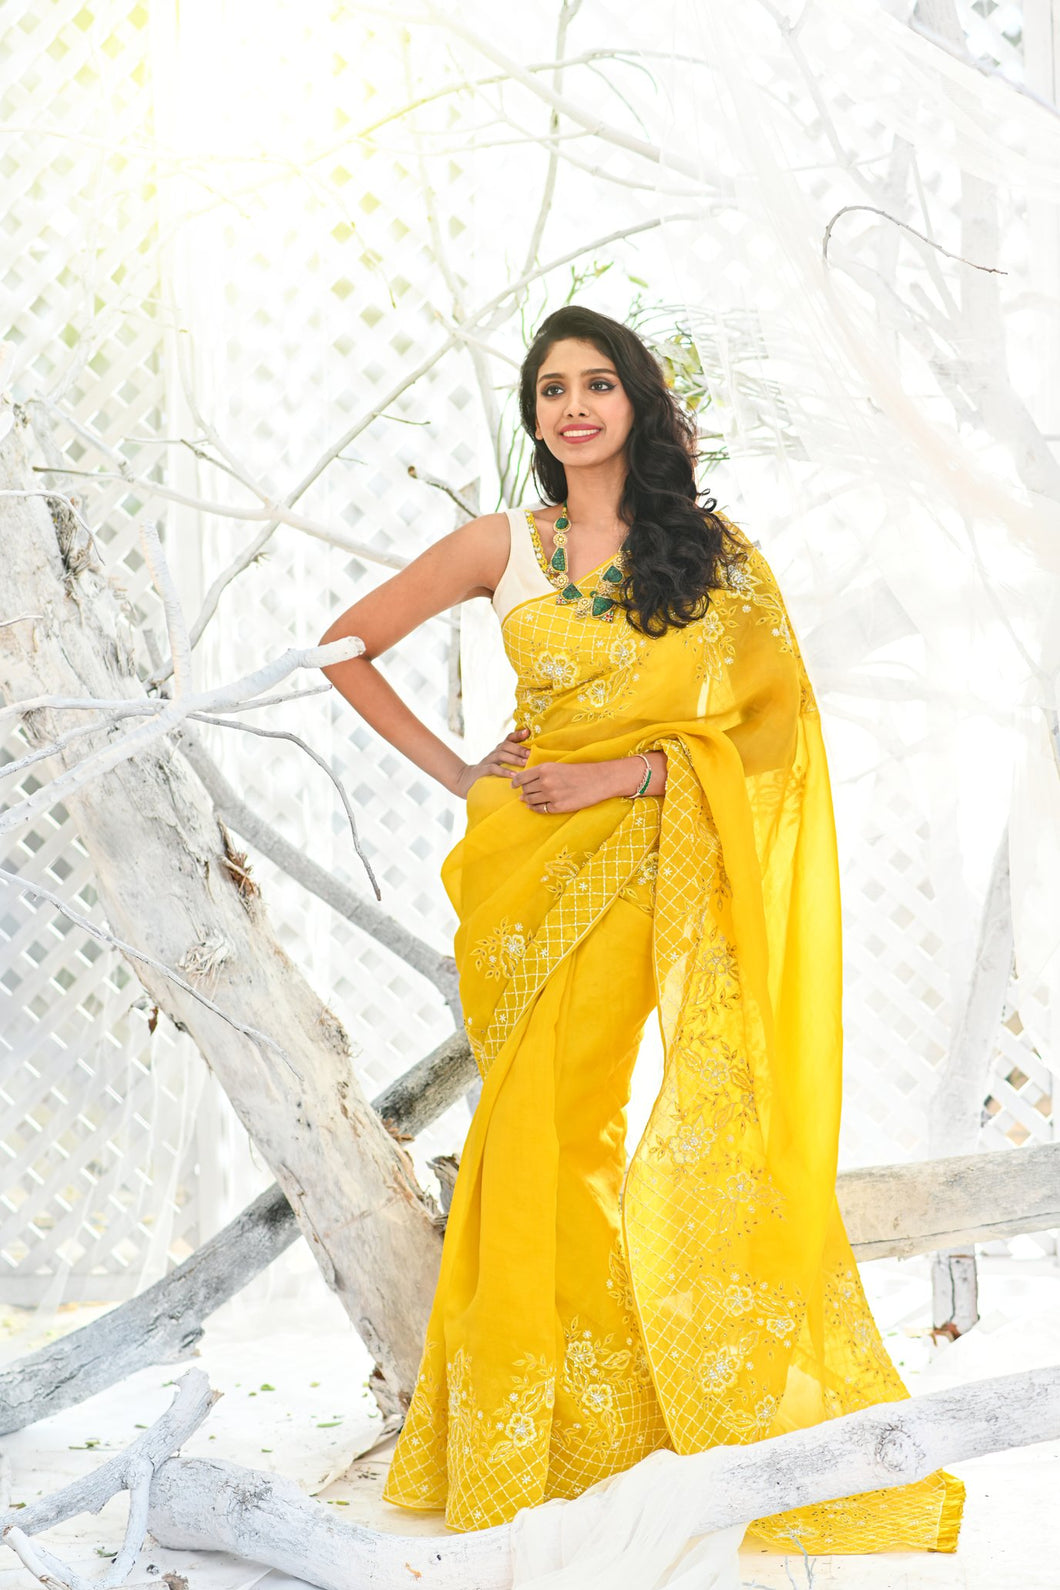 IS-BR-49 Yellow saree with white thread embroidery and white sleeveless blouse.